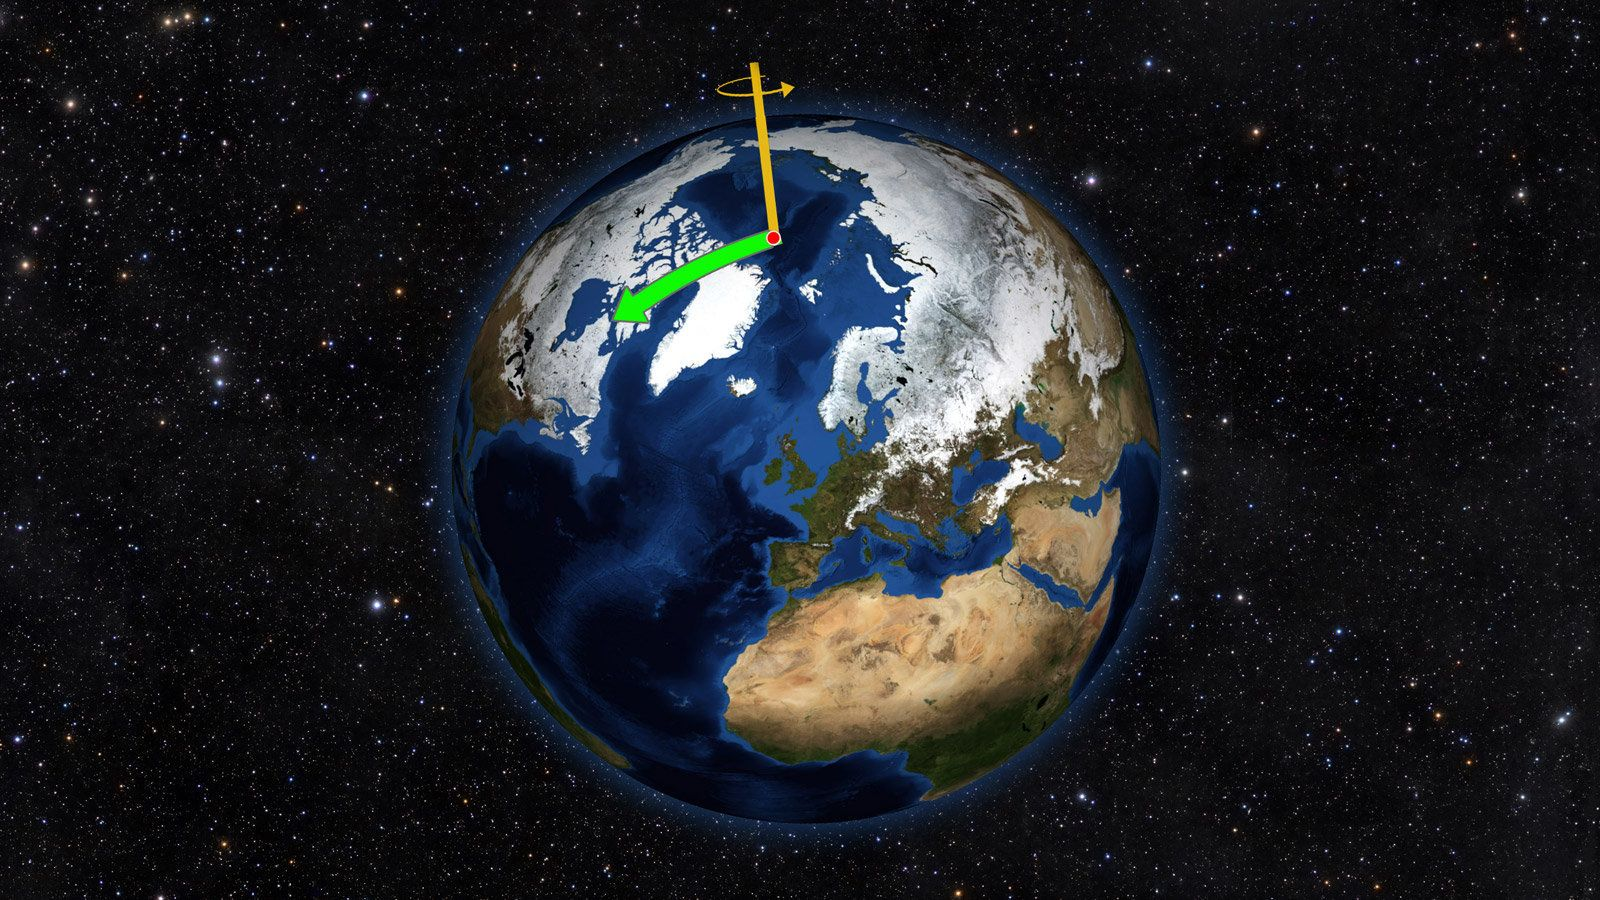 Earth does not always spin on an axis running through its poles. Instead, it wobbles irregularly over time, drifting toward N